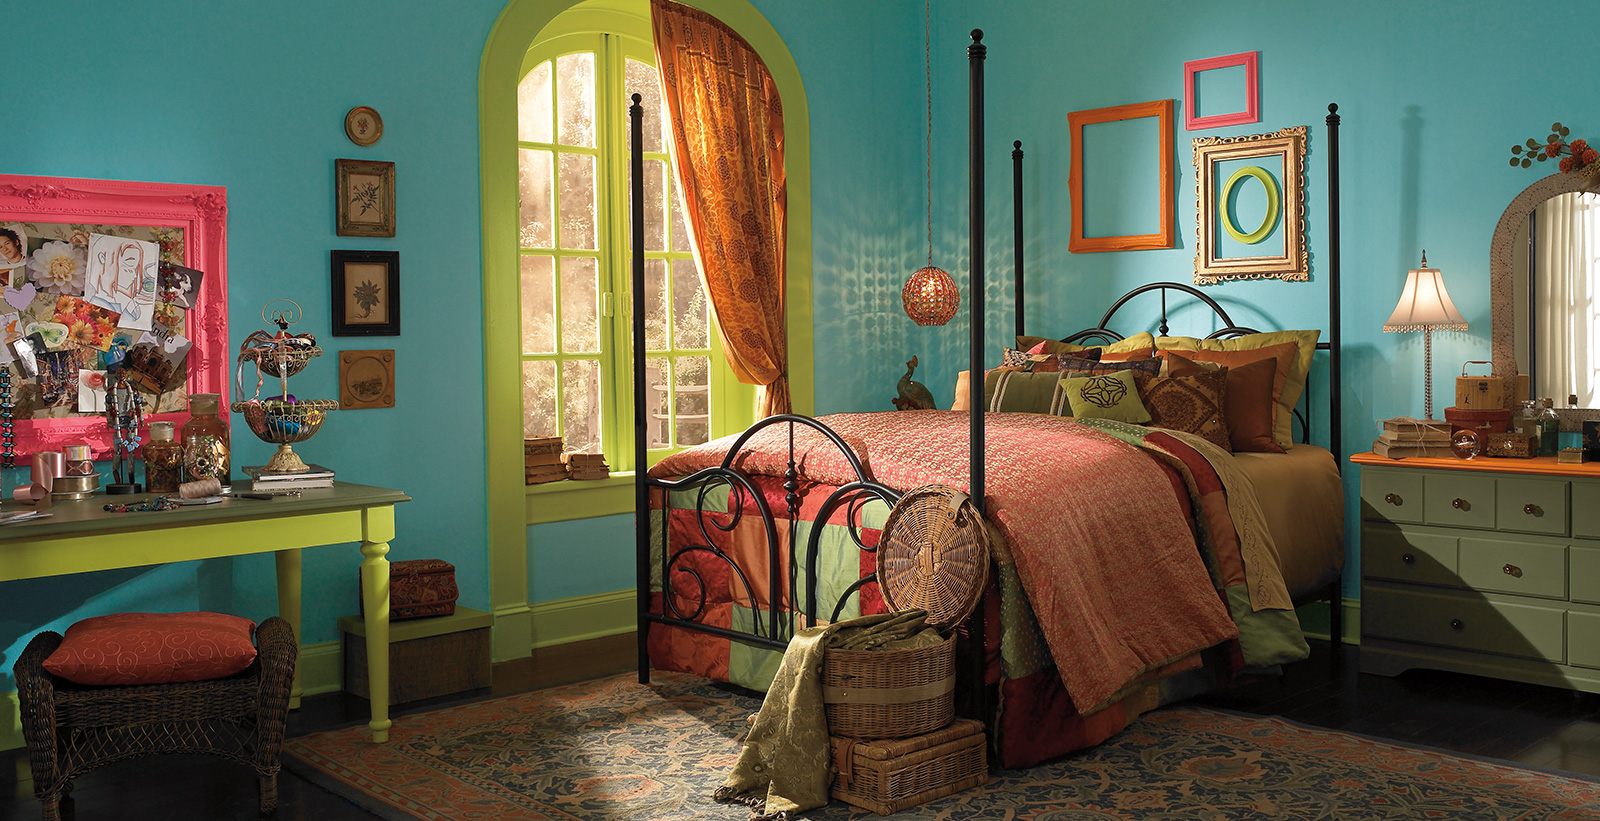 Eclectic styled youth room with blue walls, green trim, and bohemian styled bed.